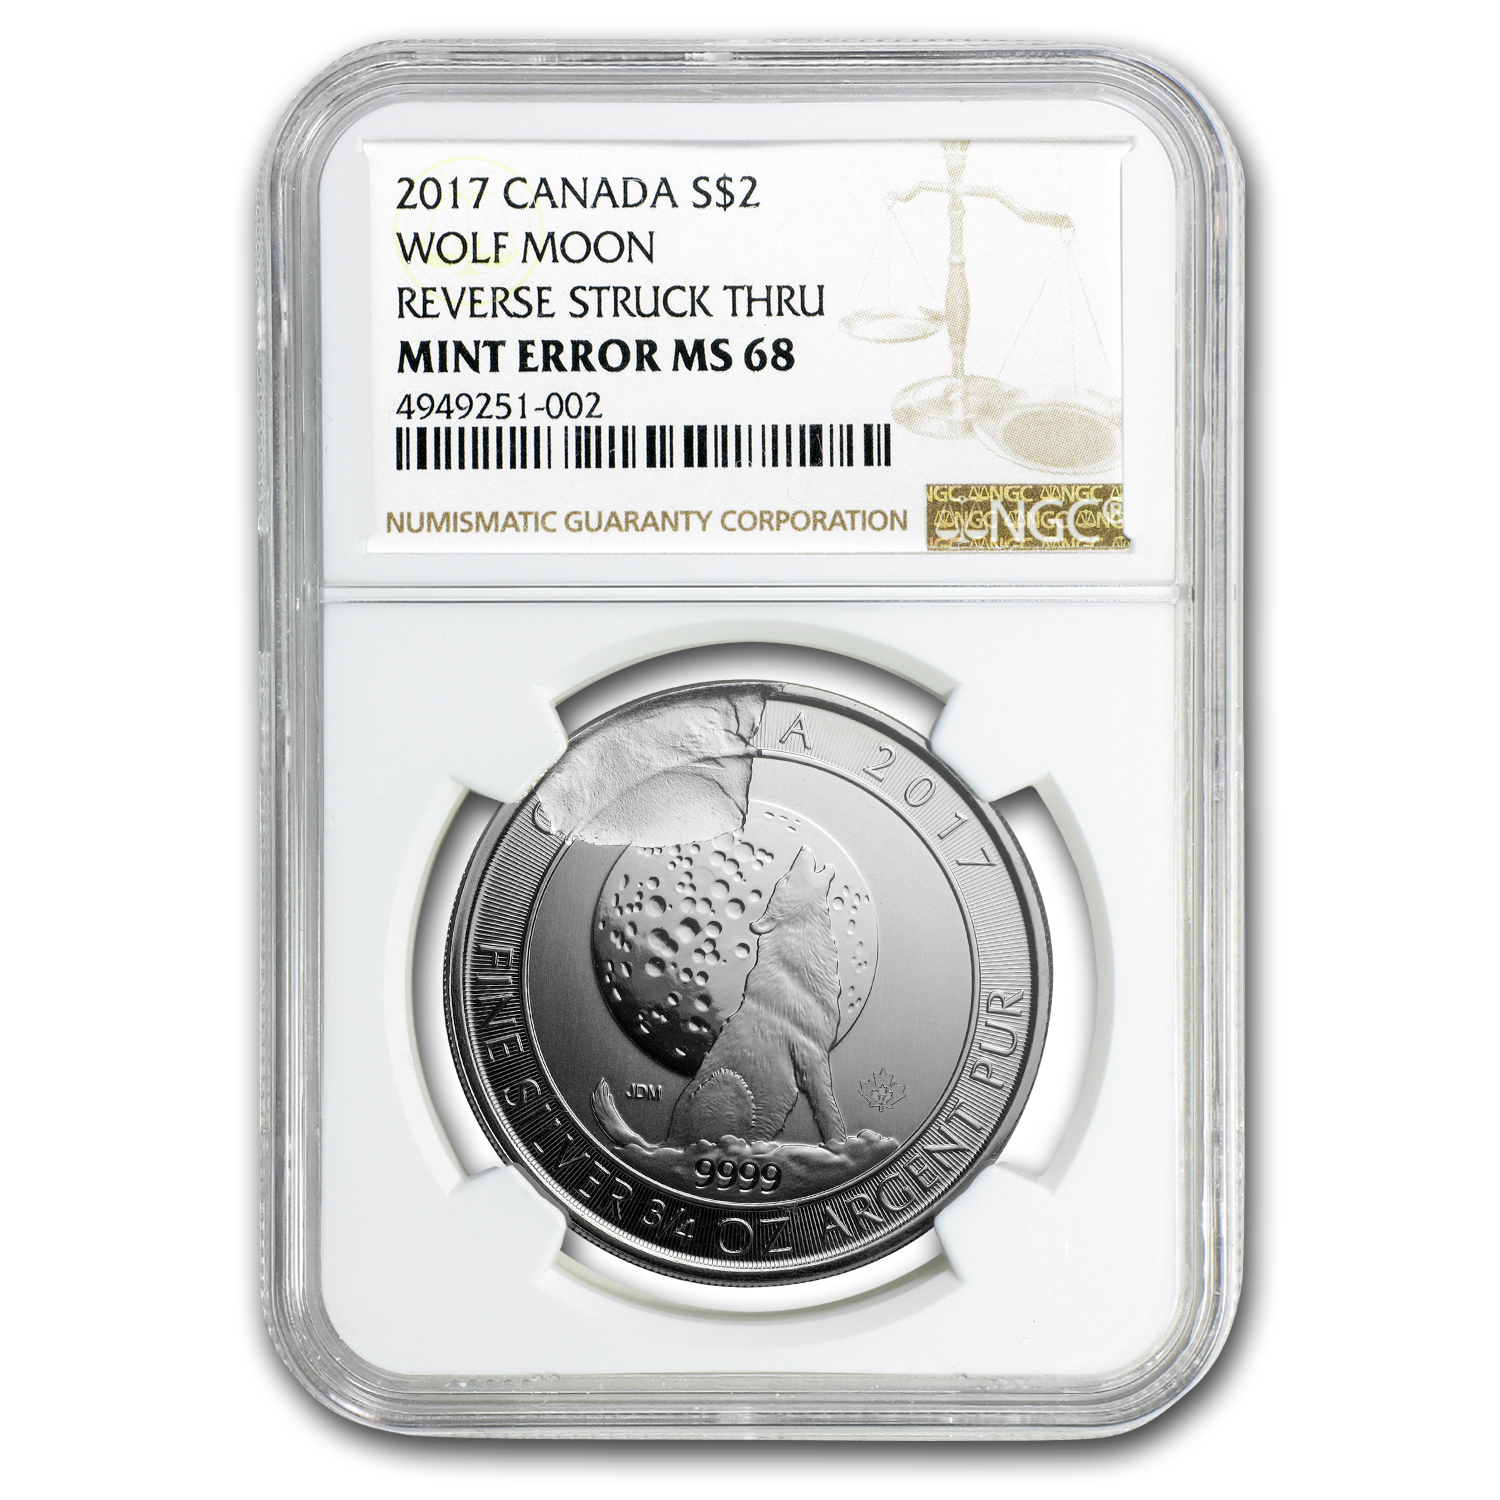 2017 Canada 3/4 oz Silver Wolf Moon MS-68 NGC (Mint Error)